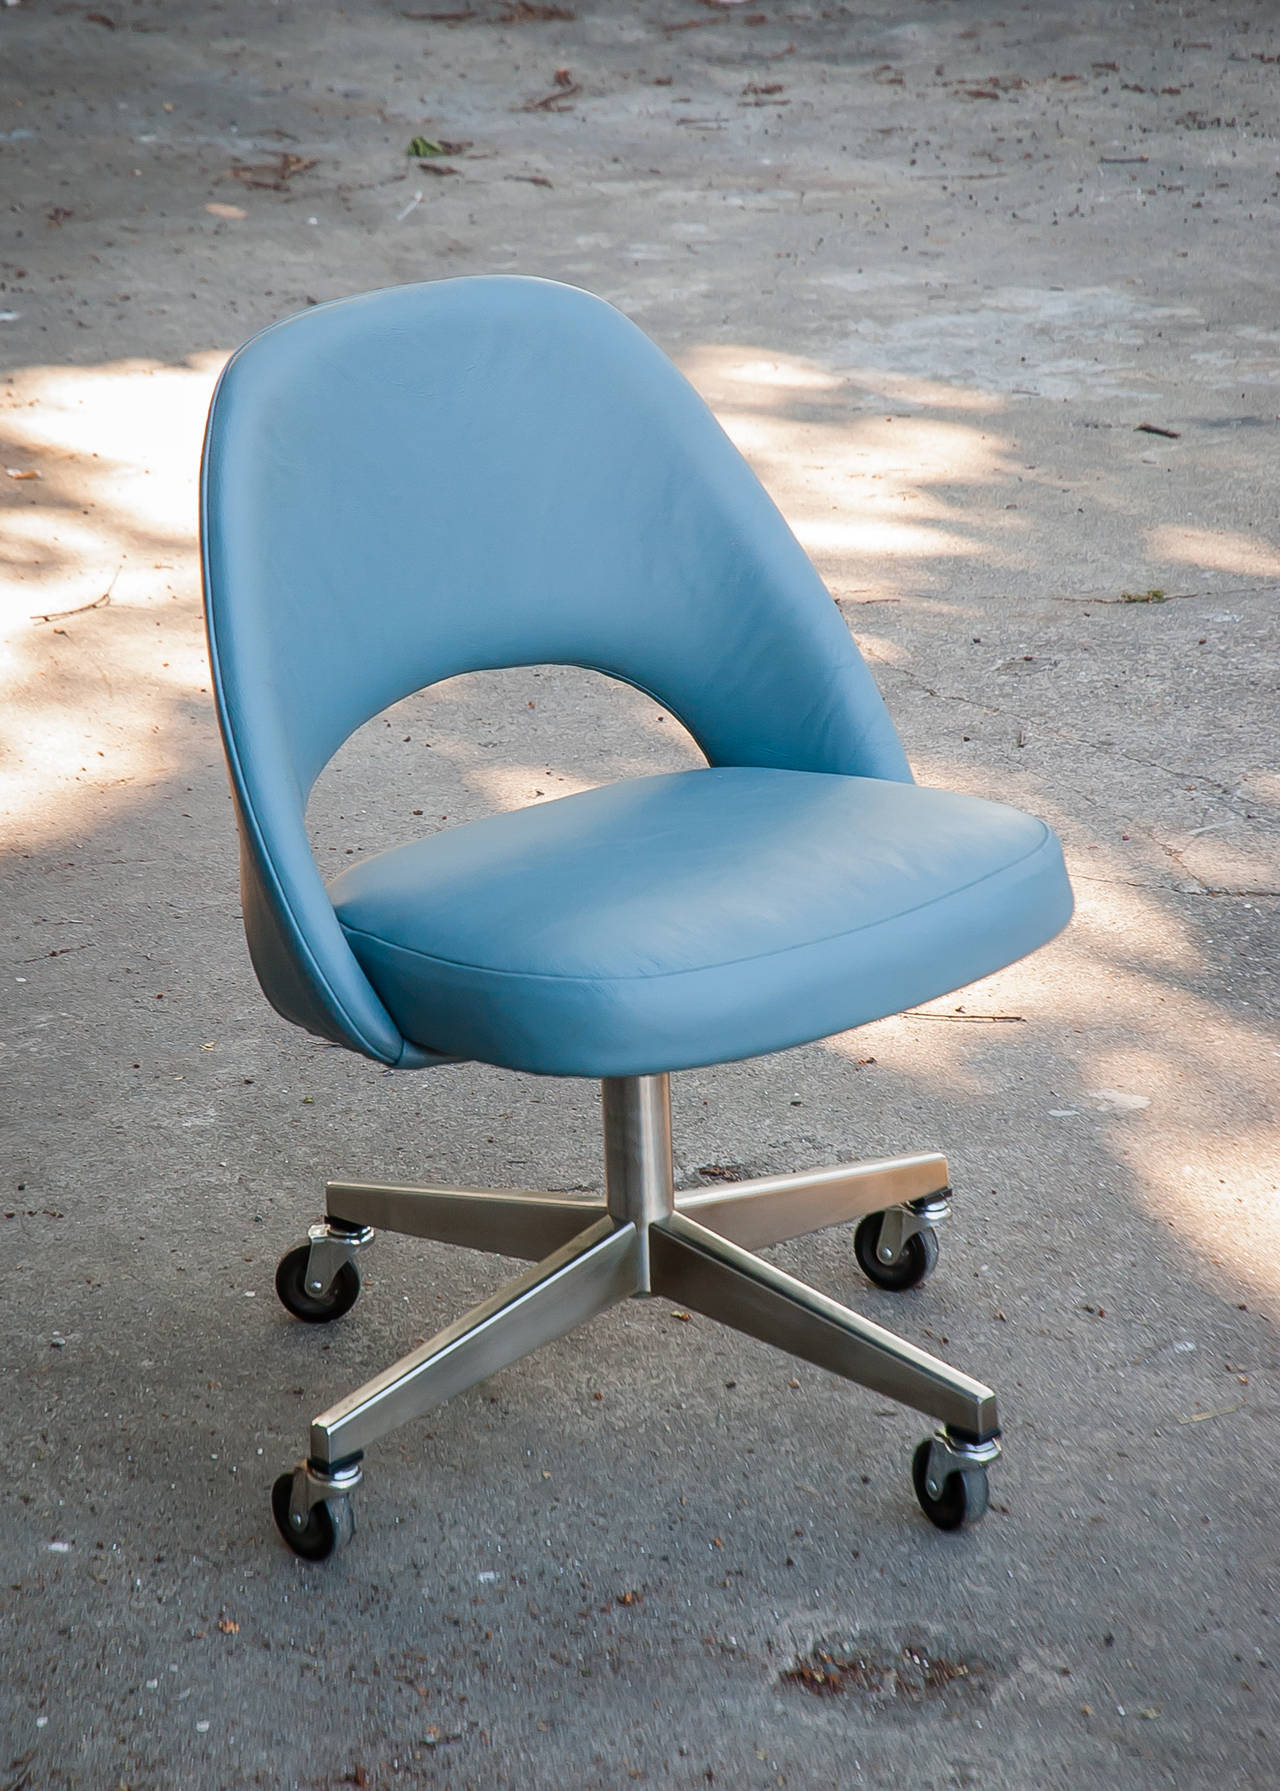 desk chair with wheels french throne vintage saarinen leather casters at 1stdibs